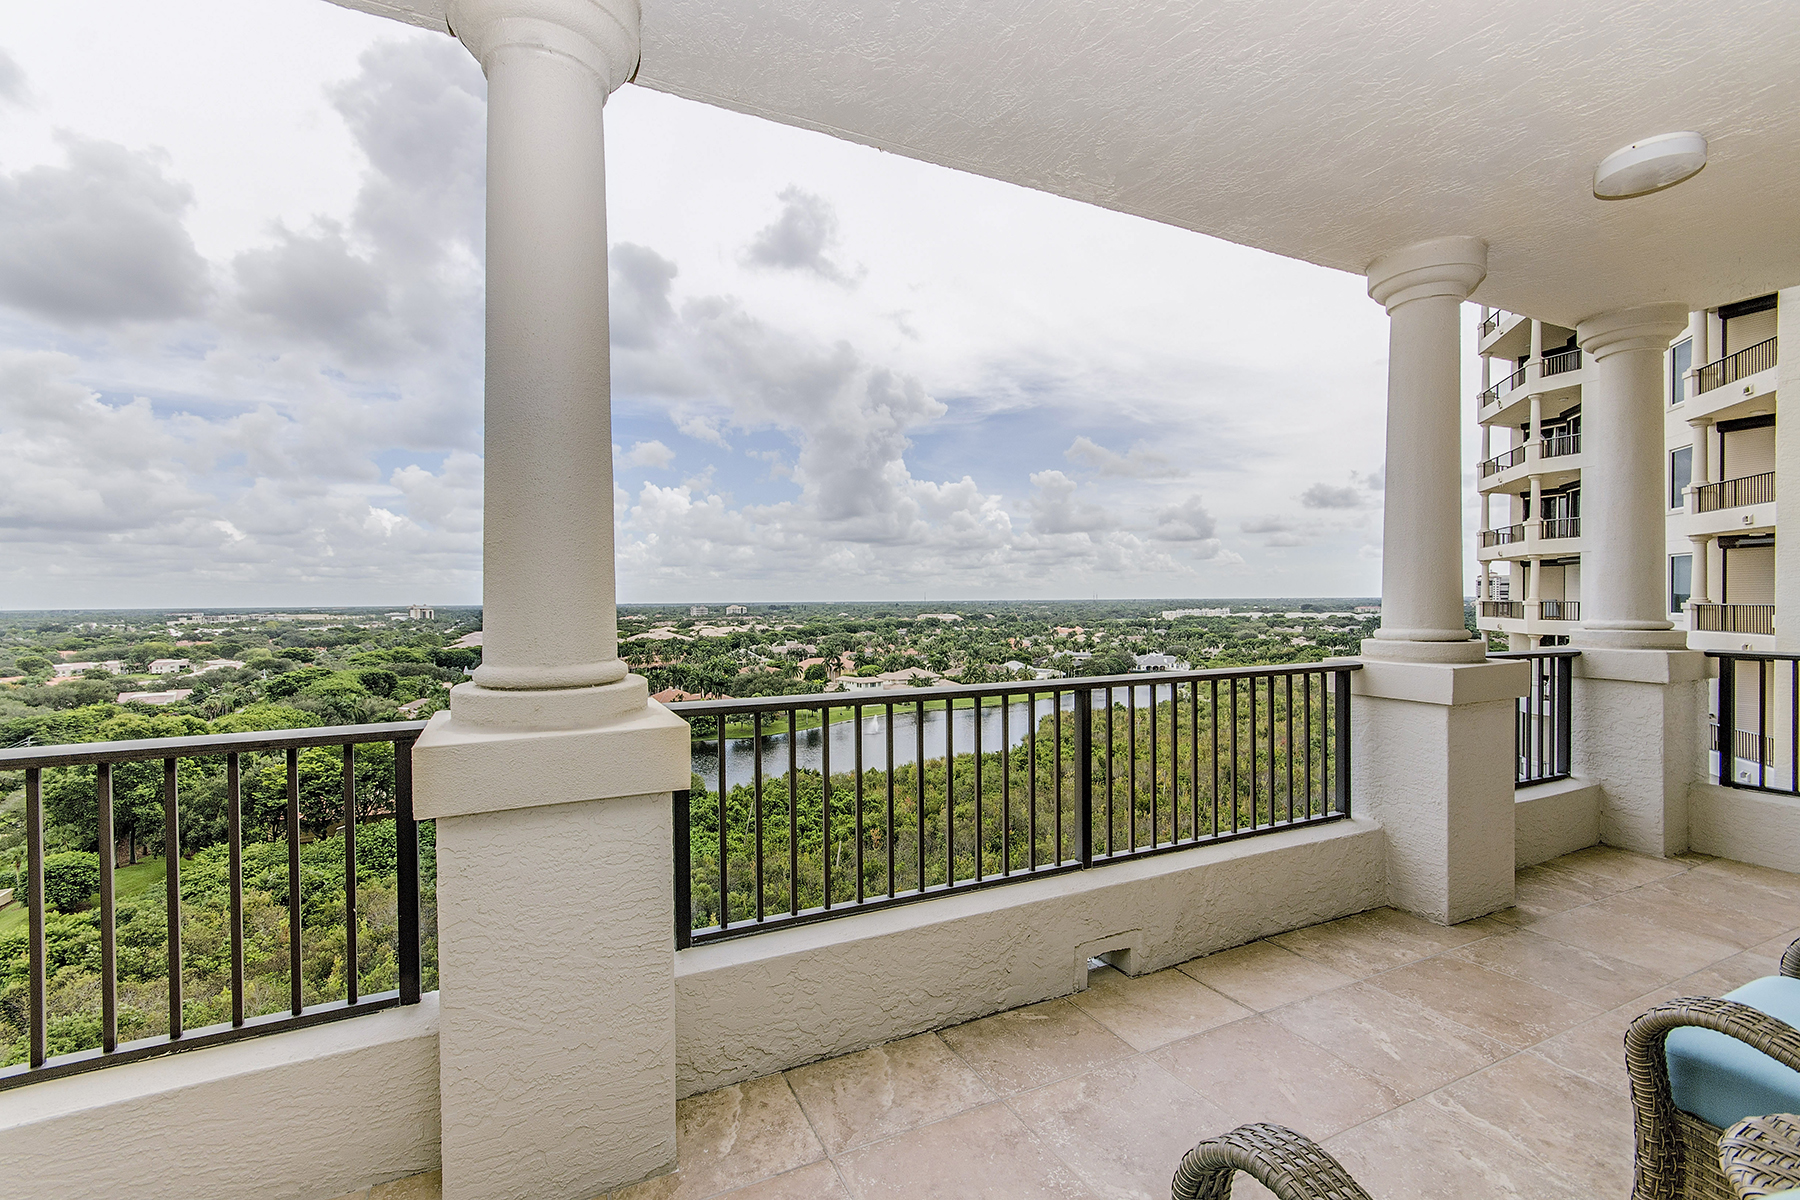 Condominium for Rent at 8787 Bay Colony Dr , 1404, Naples, FL 34108 8787 Bay Colony Dr 1404, Naples, Florida 34108 United States